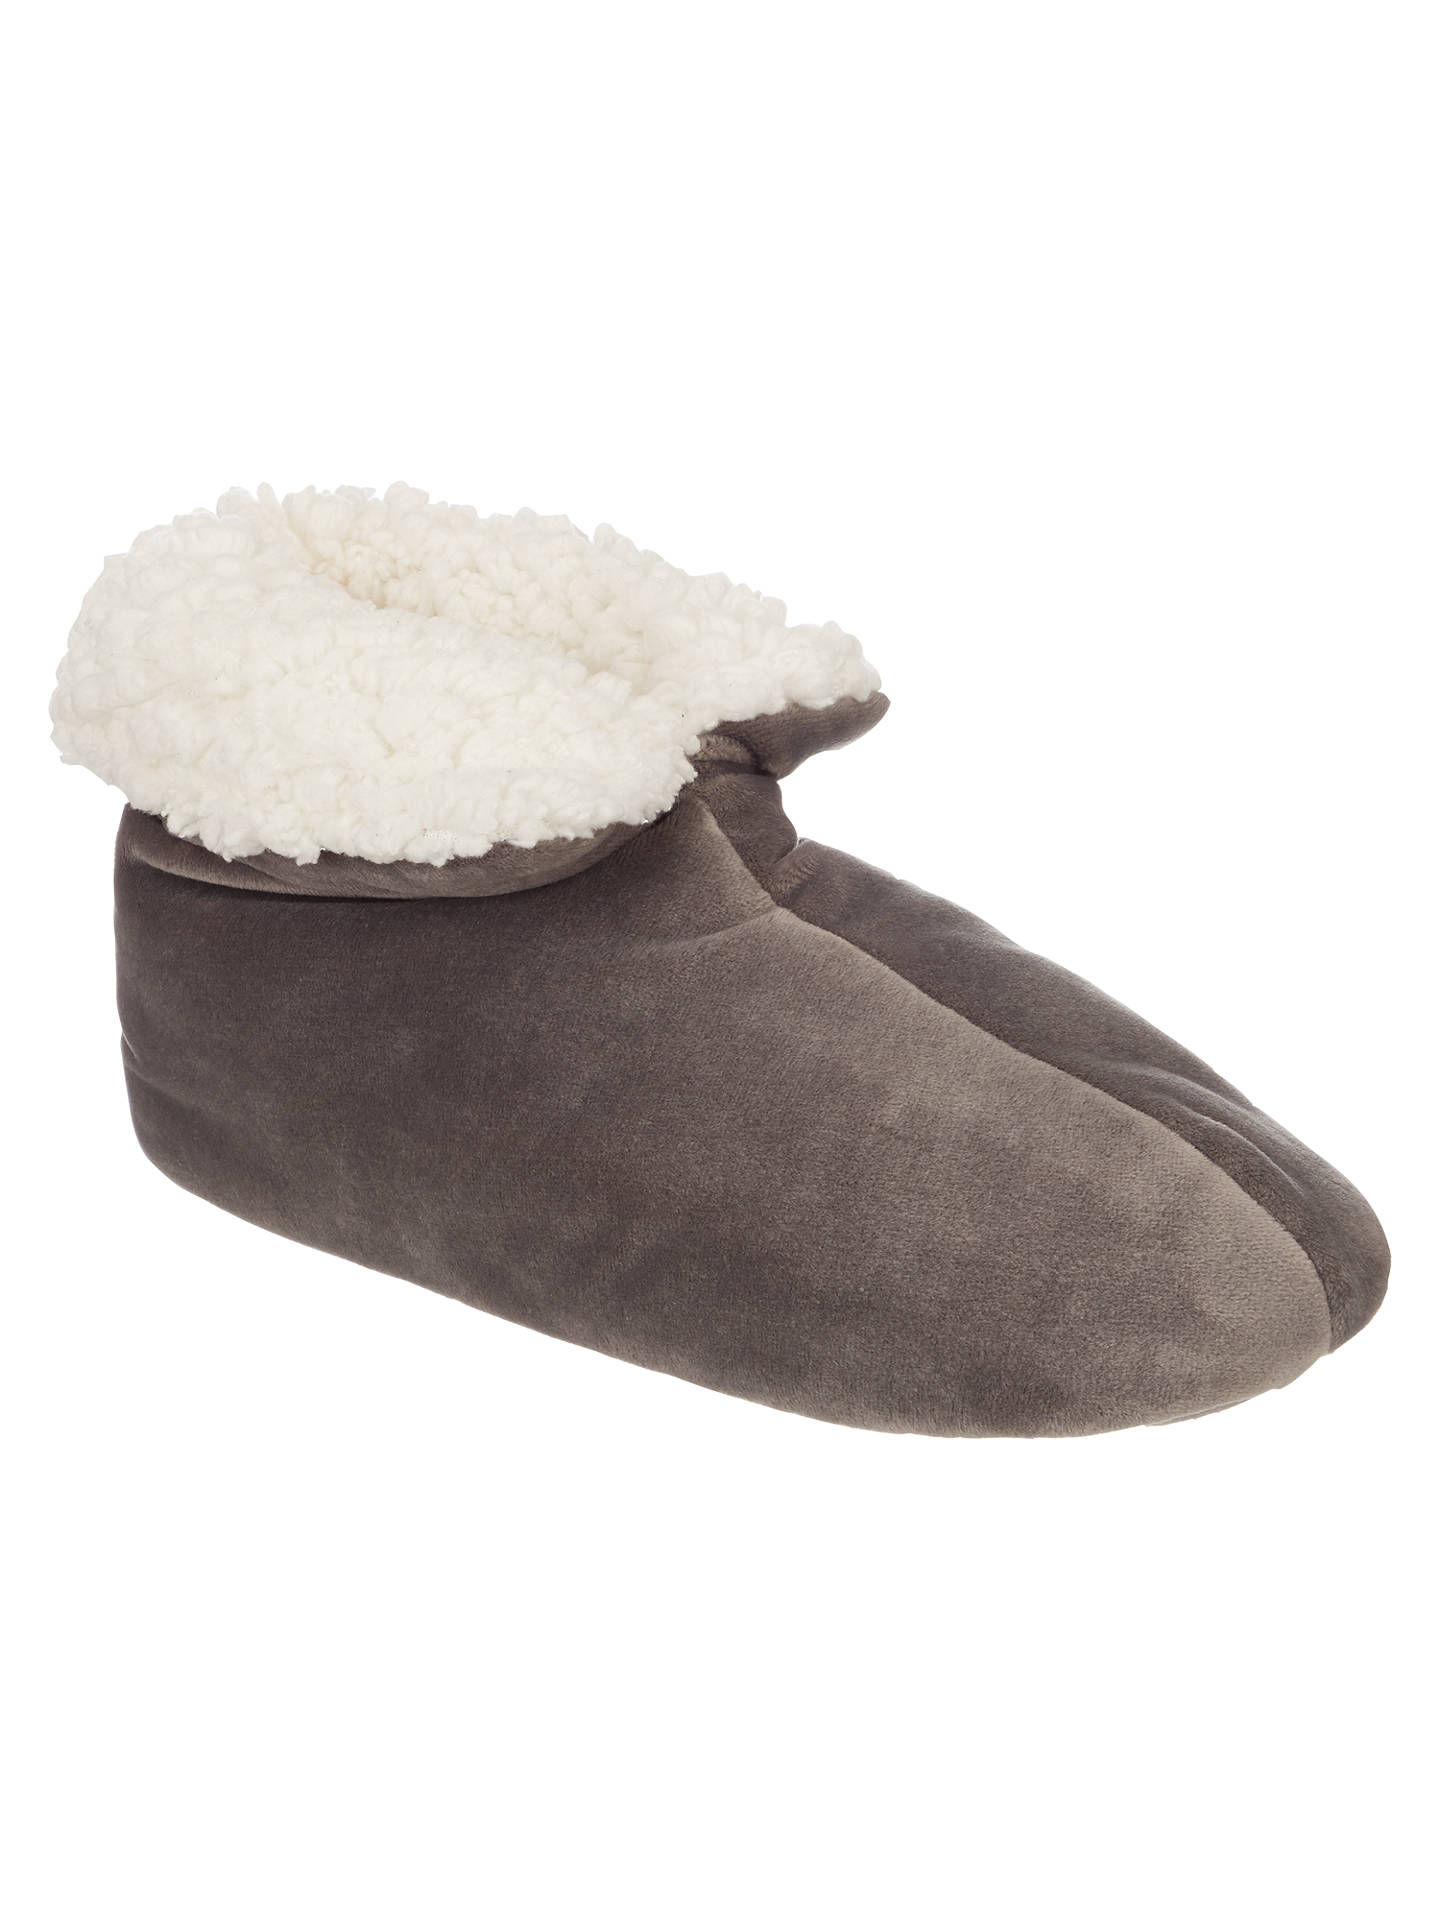 BuyJohn Lewis Faux Sheepskin Foot Duvets, Grey Online at johnlewis.com